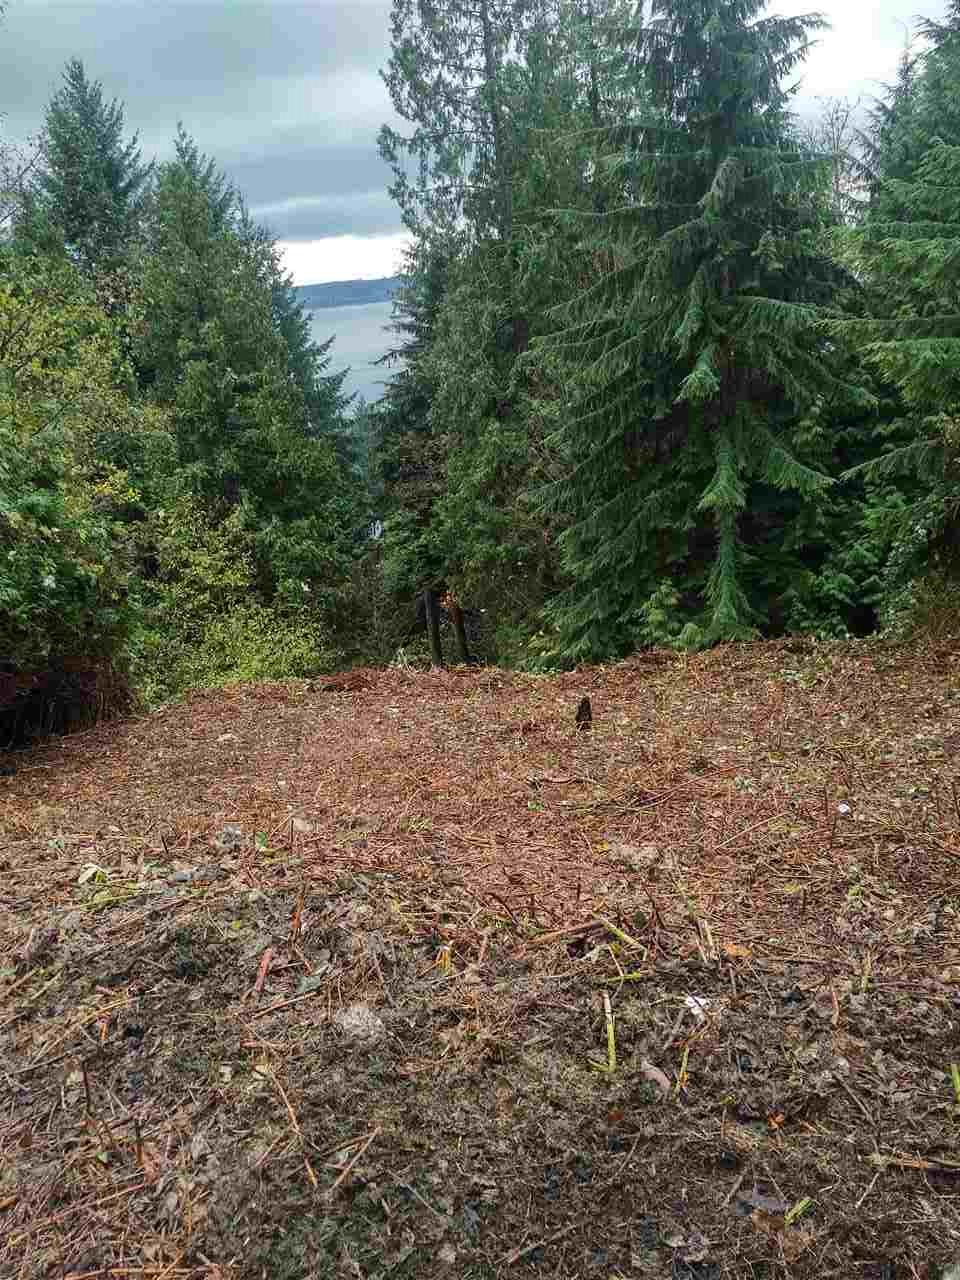 Not often you can buy 19,000 sqft view lot for this price in West Vancouver! Located in the Chelsea development, west of Panorama Village, and in an area of multi-million dollar homes, this lot has a nice view to the South which can be greatly improved with some selected tree removal. The terrain is moderately steep and treed and will require site preparation to establish the best building envelope. Priced to sell and well below assessed value!